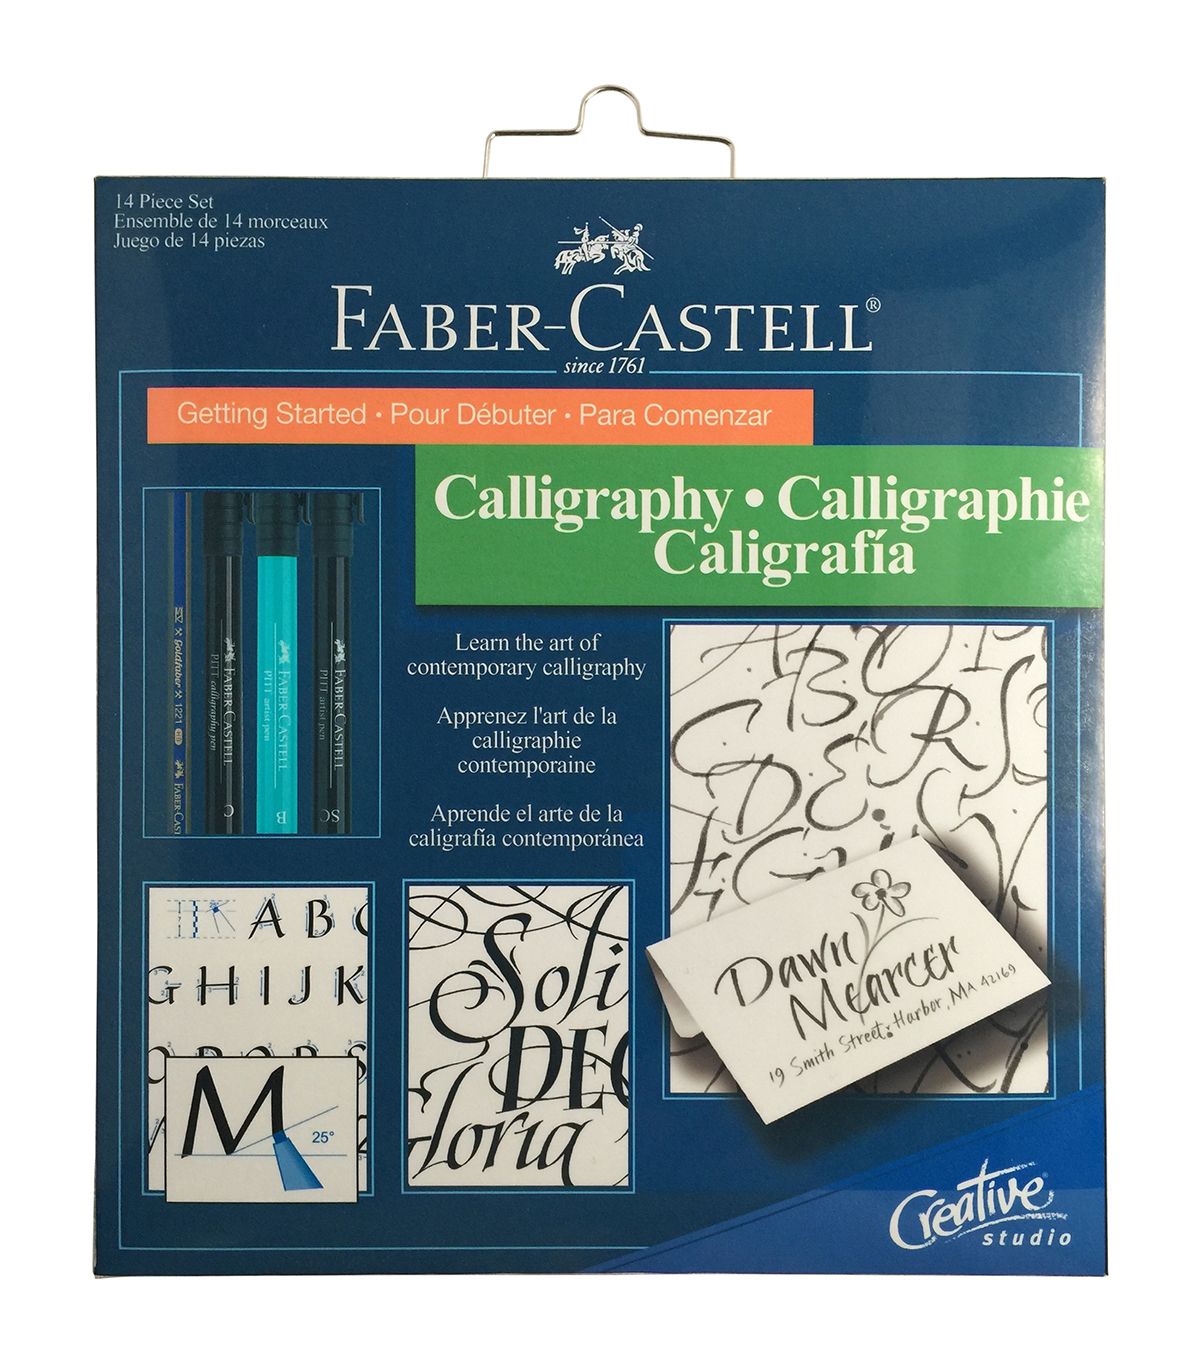 Faber-Castell® Getting Started Calligraphy Kit